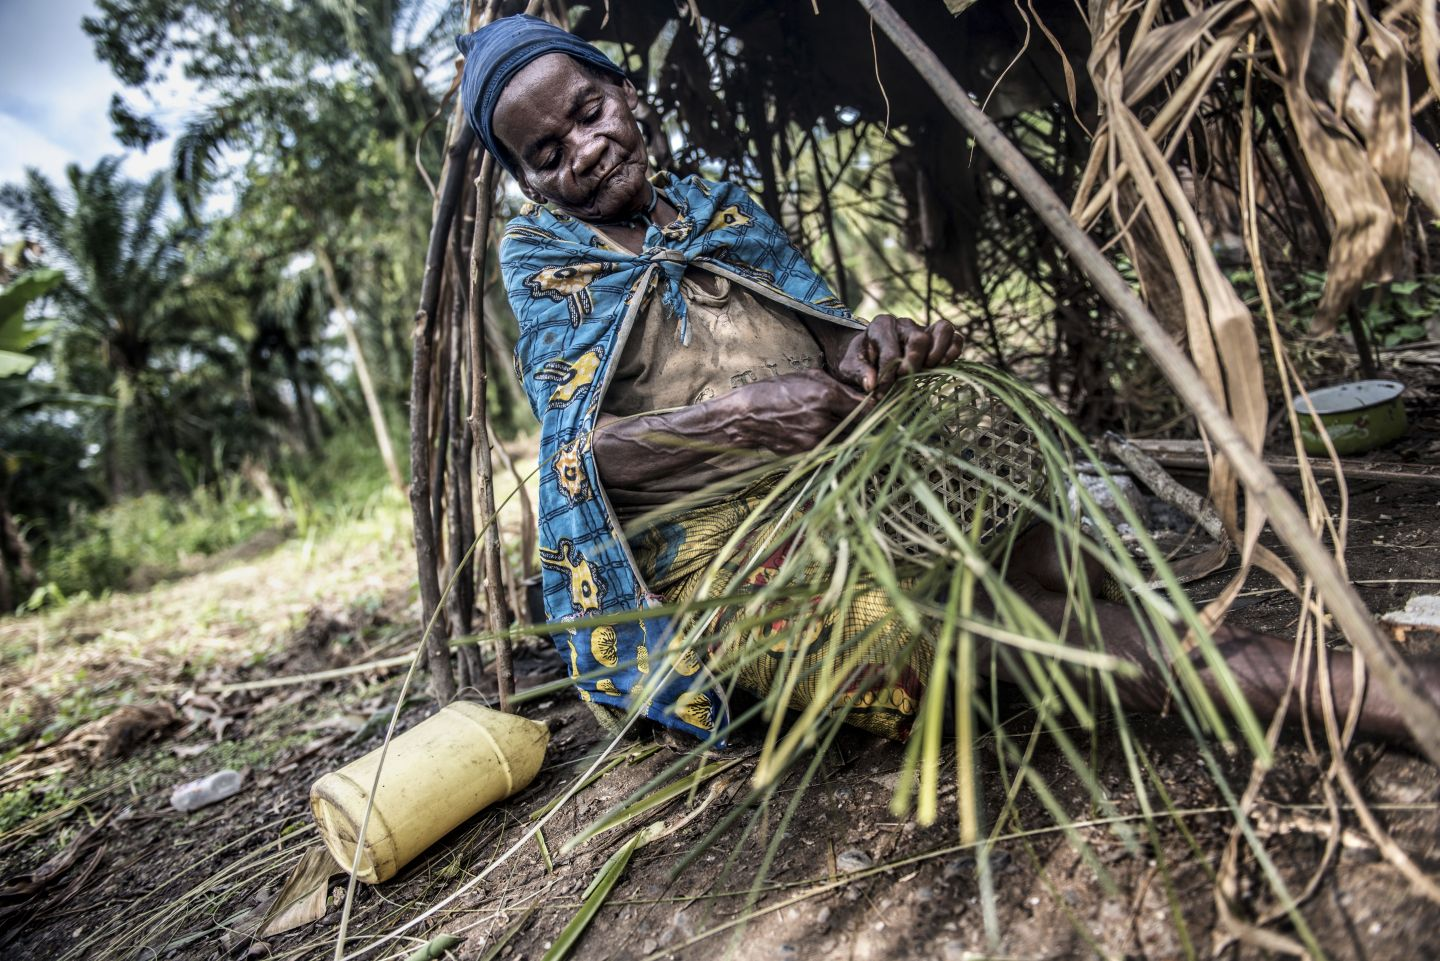 Statement: Protected areas in the Democratic Republic of Congo – a broken system